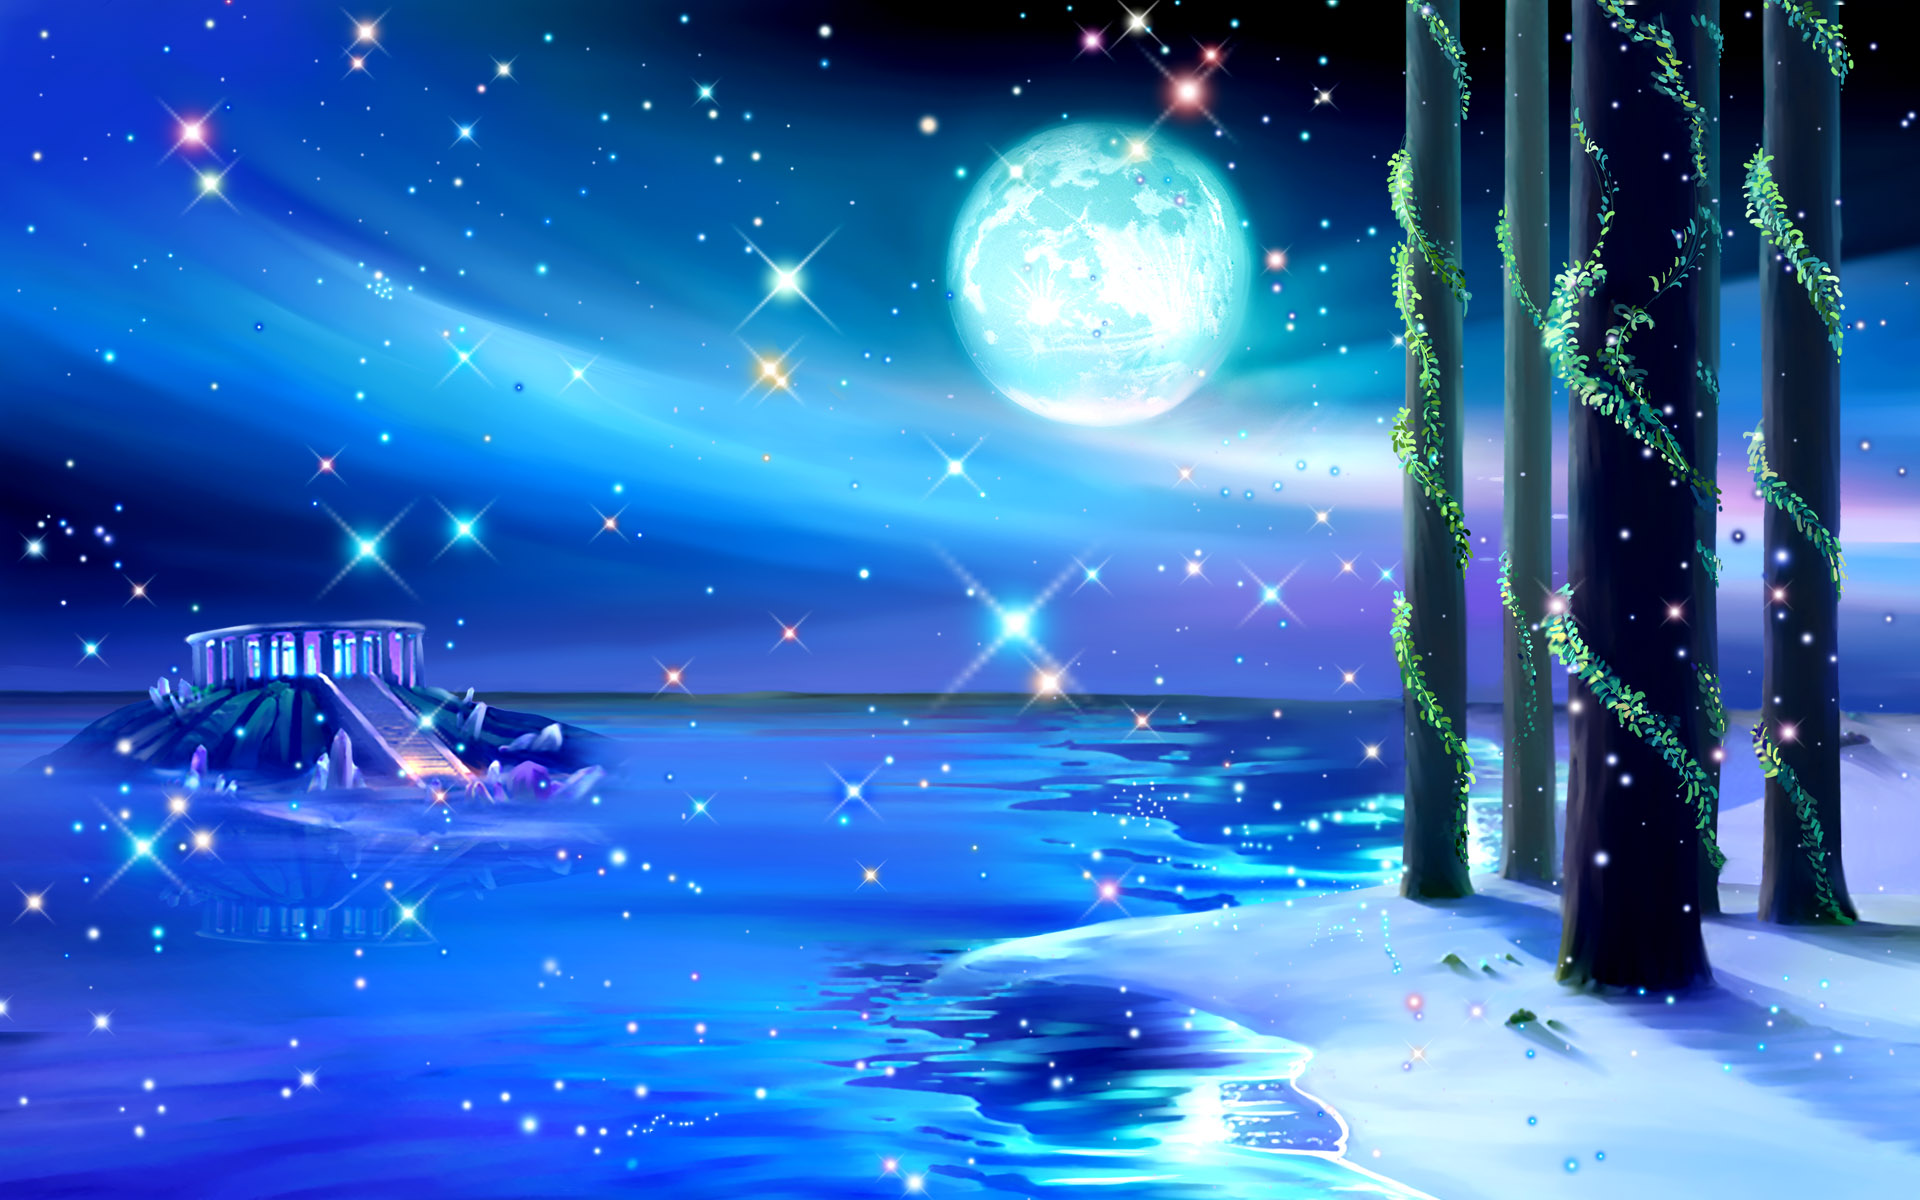 Drawn snow walpaper Wallpapers pictures Snow photos Tale